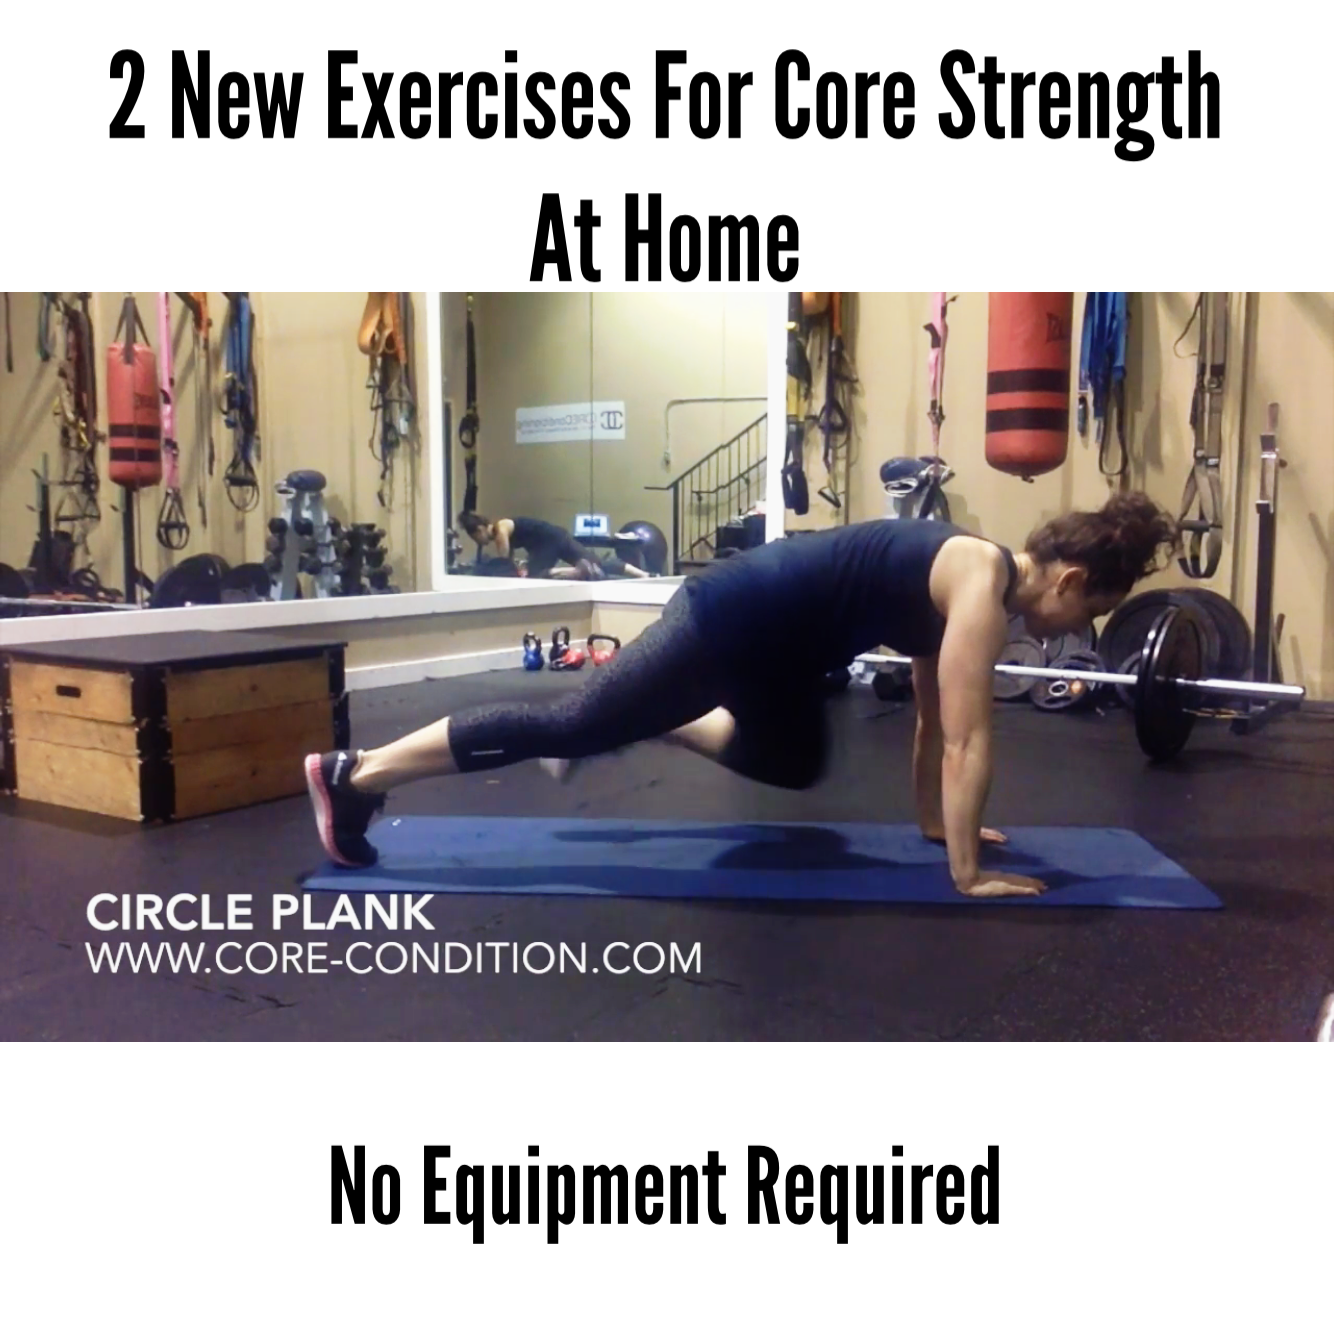 2 New Exercises For CORE Strength at Home – No Equipment Required!